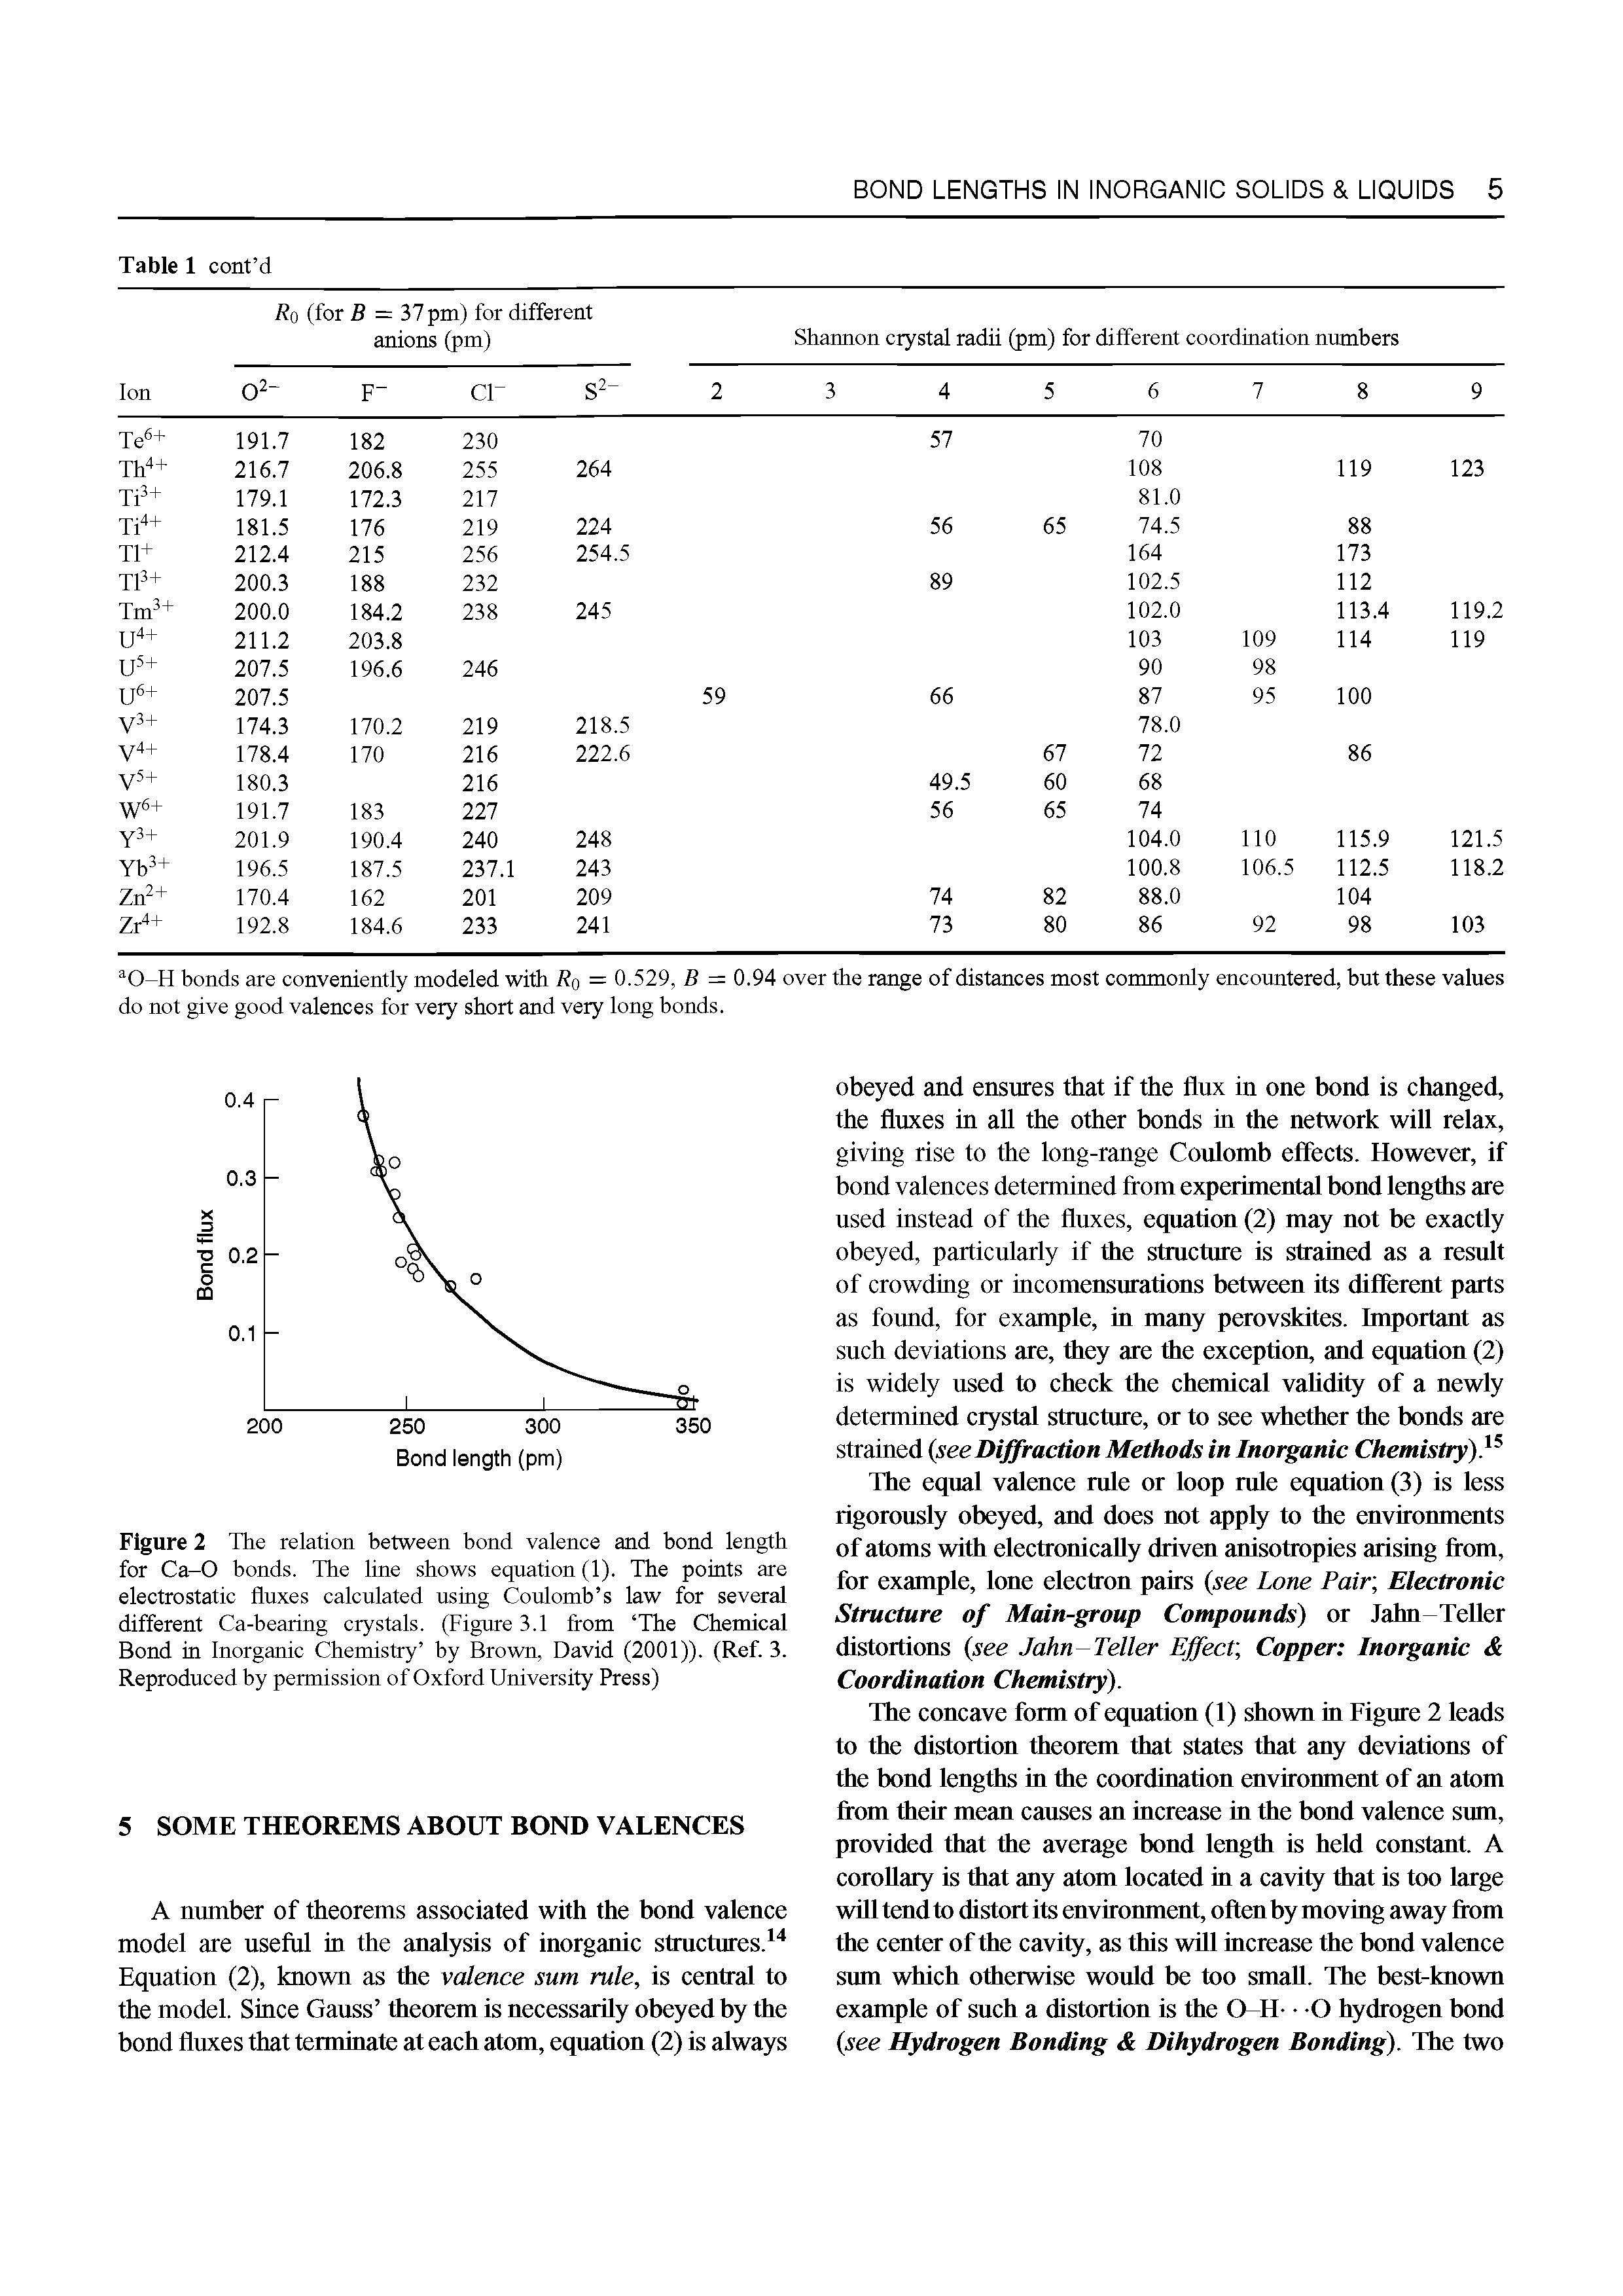 Figure 2 The relation between bond valence and bond length for Ca-0 bonds. The line shows equation (1). The points are electrostatic fluxes calculated using Coulomb s law for several different Ca-bearing crystals. (Figure 3.1 from The Chemical Bond in Inorganic Chemistry by Brown, David (2001)). (Ref. 3. Reproduced by permission of Oxford University Press)...